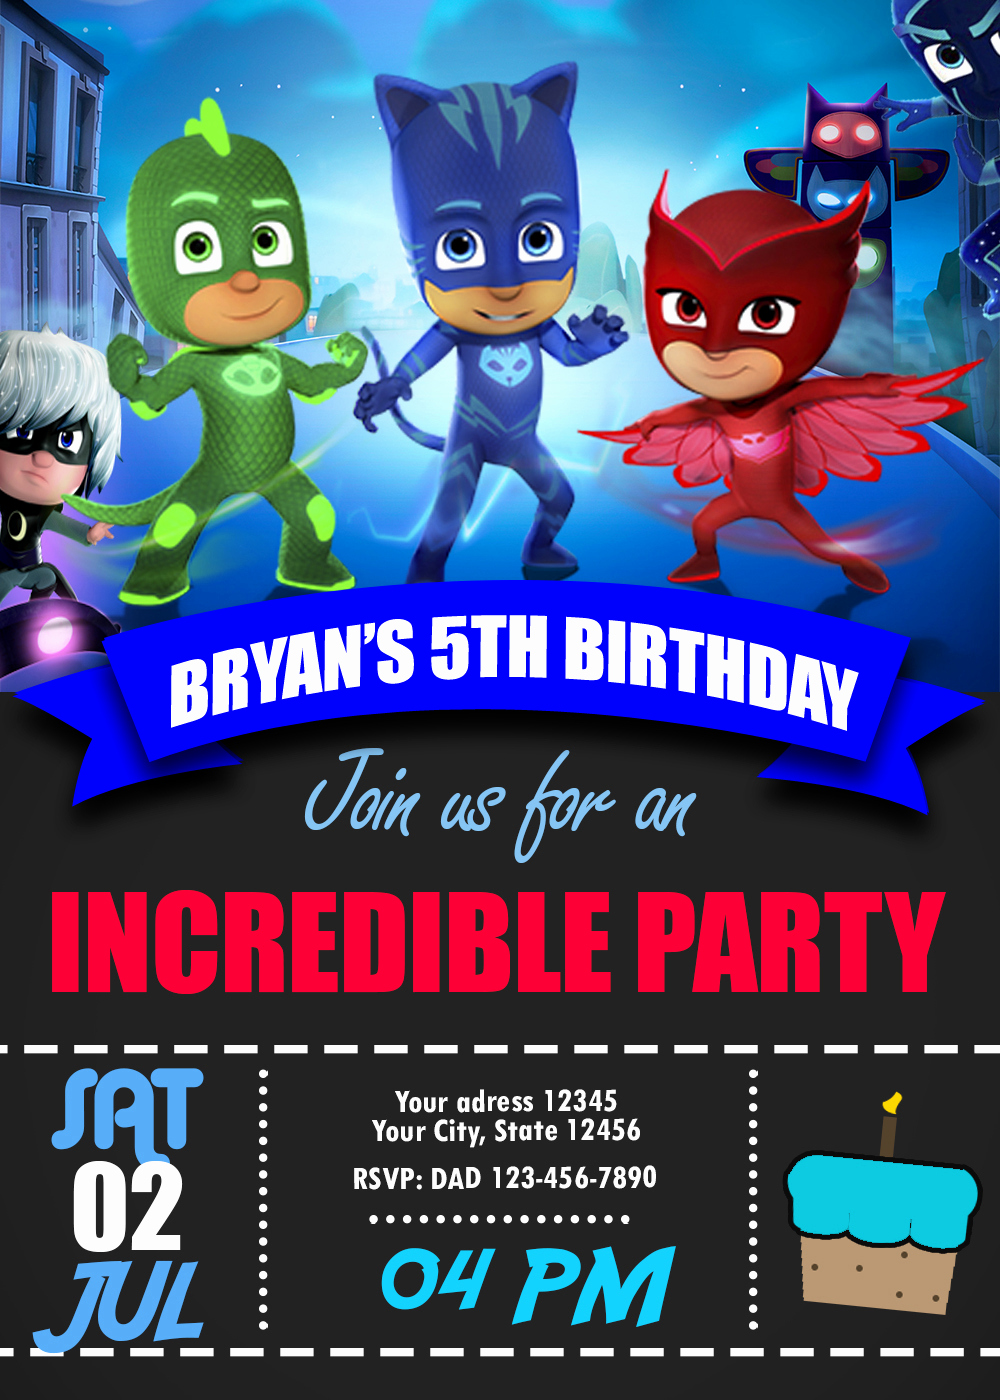 Pj Mask Invitation Free Luxury Blue Catboy Pj Masks Birthday Invitation Oscarsitosroom